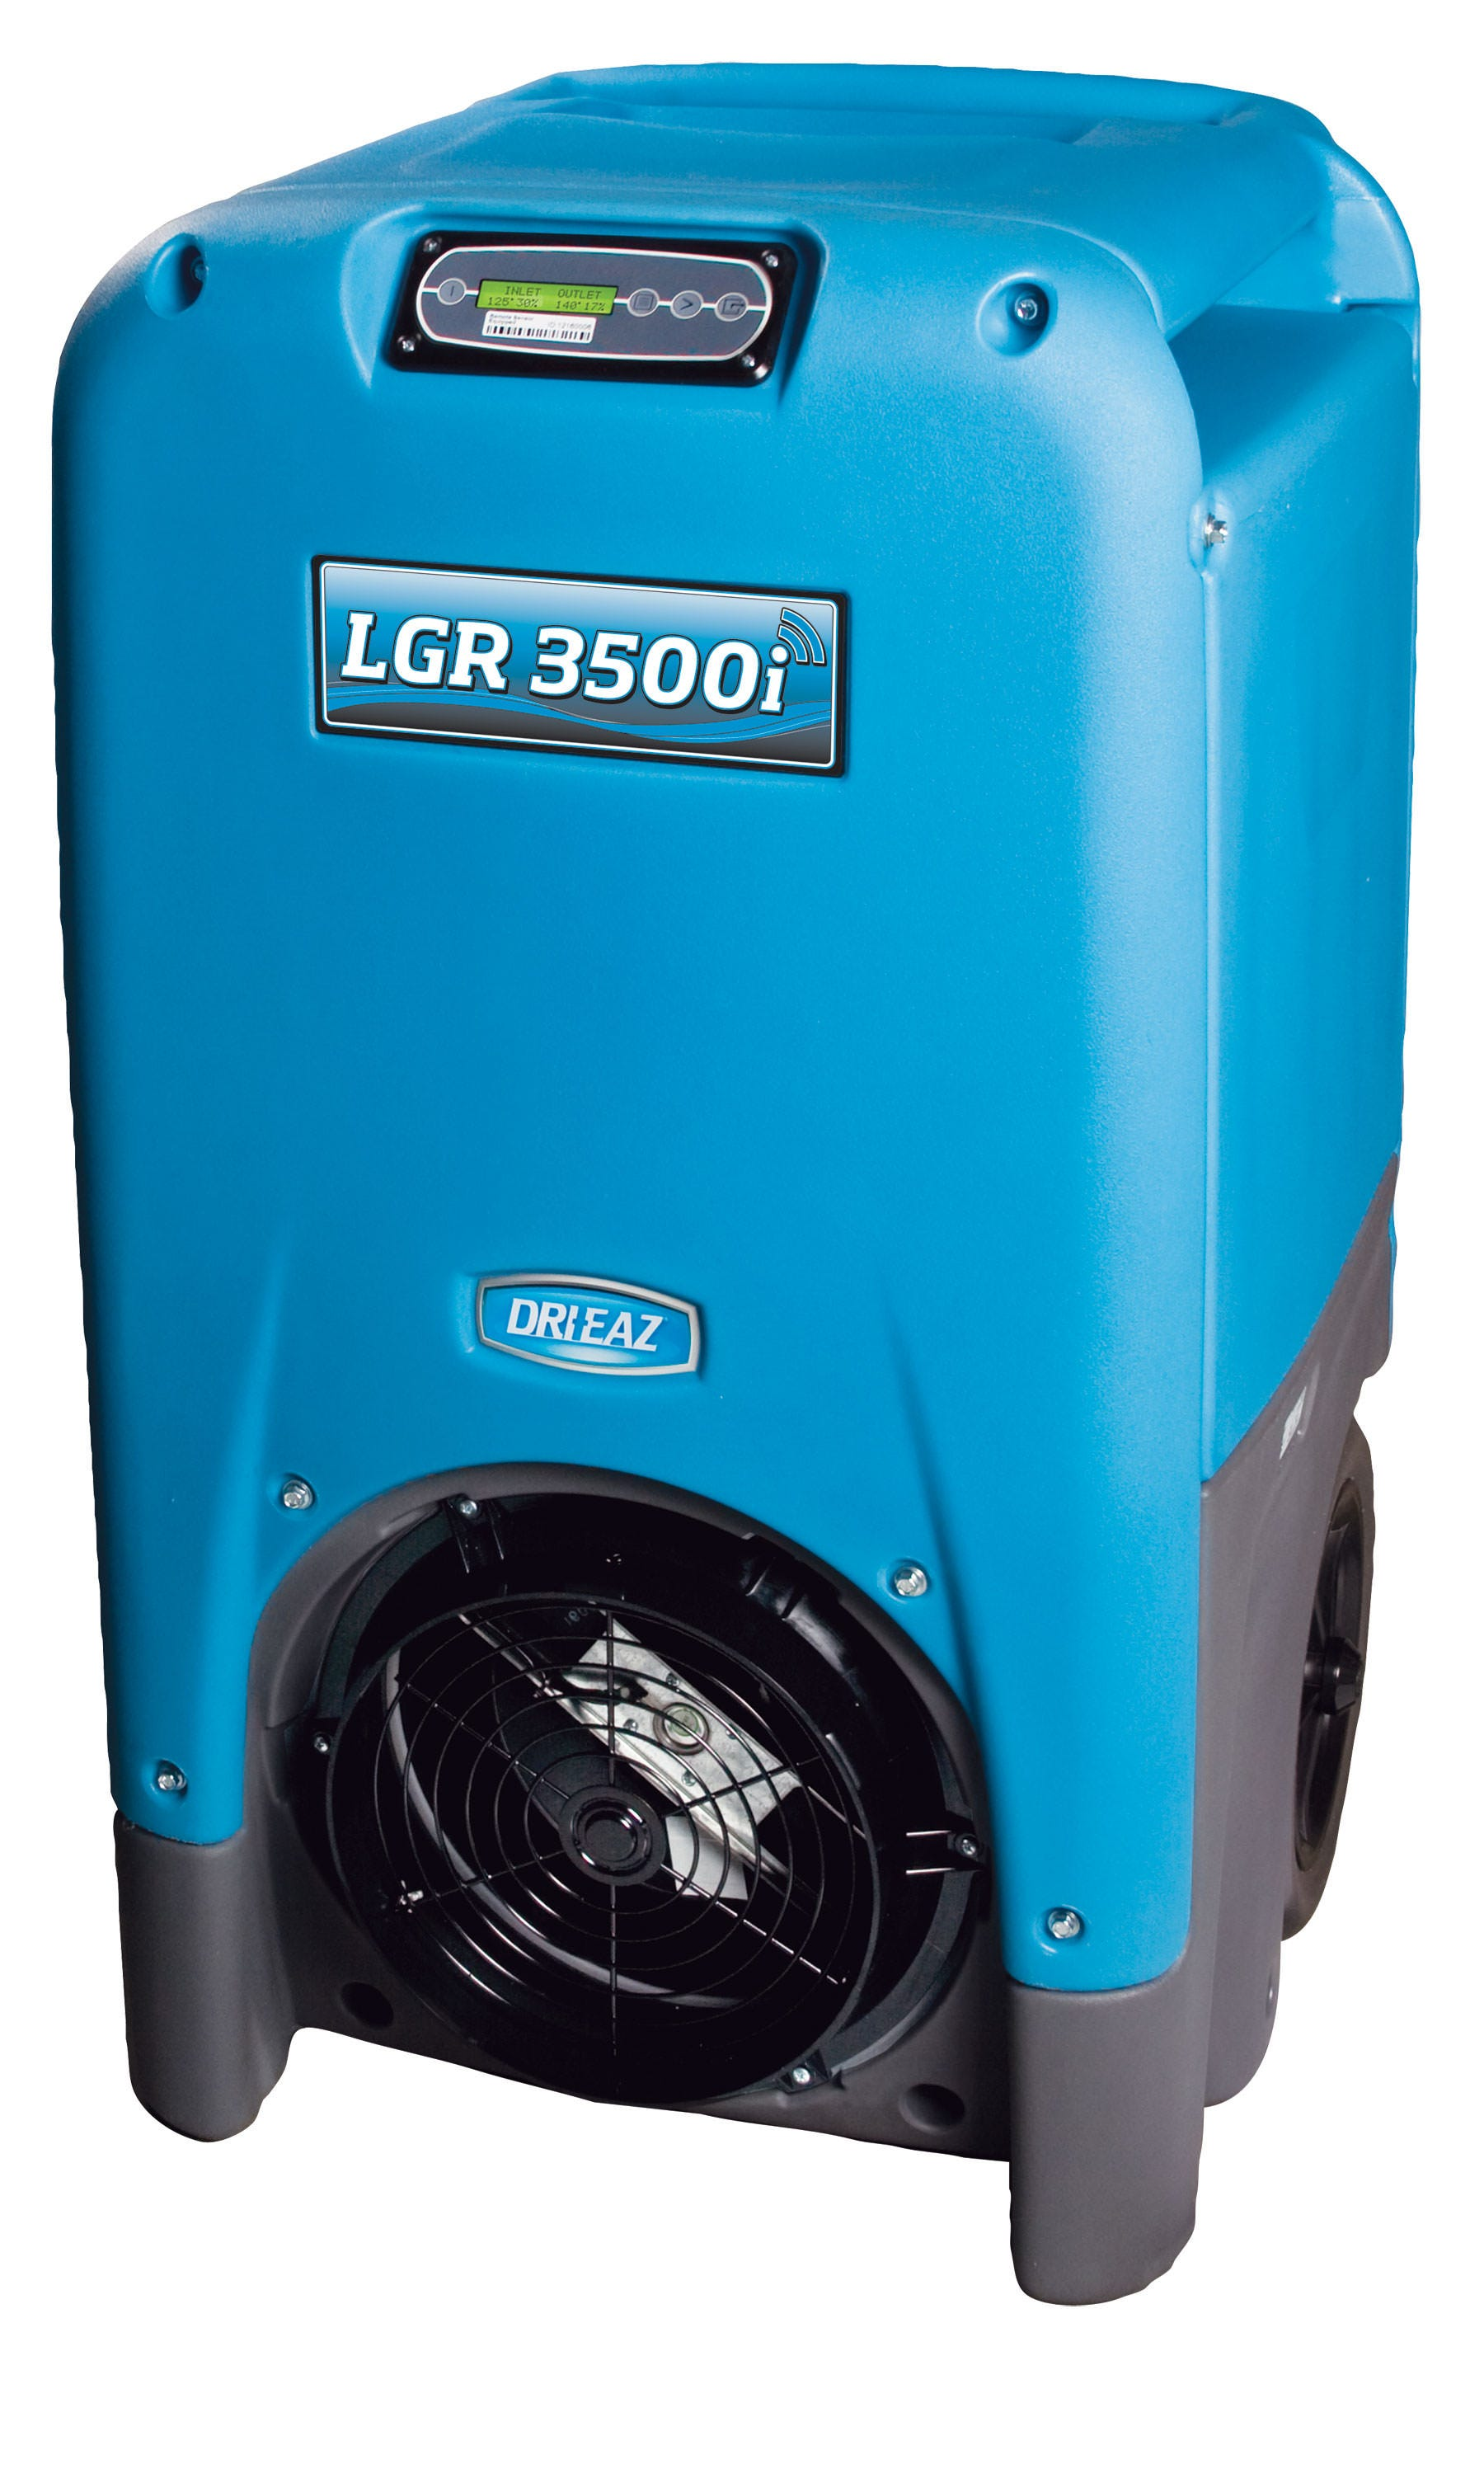 Dri-Eaz LGR 3500i Dehumidifier - 170 Pints/Day Dri-Eaz LGR 3500i Dehumidifier The Dri-Eaz LGR 3500i is designed to work intelligently, with built-in sensors and adaptive controls. The Dri-Eaz LGR 3500i puts the  i  in intelligent dehumidification. The powerful LGR dehumidifier continuously monitors its own system performance and automatically adjust airflow and defrost cycles for maximum efficiency. The control panel on the LGR 3500i displays inlet and outlet conditions. Lead time varies. Can be from a couple days to 2 weeks. Please call 855-289-1441 for lead times. The Dri-Eaz LGR 3500i is a Low Grain Refrigerant (LGR) dehumidifier. This means it can remove even more water than a conventional refrigerant dehumidifier. Additionally, the LGR 3500i is incredibly energy efficient, using only 8 amps at AHAM conditions (80F/60%RH) to produce 170 pints/day. If you want to dehumidify intelligently, choose the LGR3500i. New: All 2017 LGR i-Series units include enhanced control systems that deliver even better water removal performance, plus convenient new features such as grain depression information and filter replacement reminders to keep your drying systems at peak efficiency. Features Built-in thermo-hygrometer monitors: Displays inlet and outlet conditions Automatic humidistat controls Digital control panel features plain-English system messages, not codes. Legendary Dri-Eaz rotomolded housing is dent and scratch resistant. Unit automatically restarts if power is interrupted during operation. Technical Specifications Power: 11.2 Amps, 115 Volts, 1288 Watts Water Removal at AHAM conditions (80F/60%RH): 170 Pints/Day Water Removal at 90F/90%RH: 240 pints/day Water Removal at 80F/20%RH: 24 pints/day Process Air: 400 CFM Air Filter: 3M HAF (Dri-Eaz part no. F421) Dimensions: 40.5  H x 23  D x 24  W Power Cord: 25ft. detachable Hose: 40ft. Construction: Rotomolded polyethylene shell Safety: ETL certified to CSA 22.2 no. 92